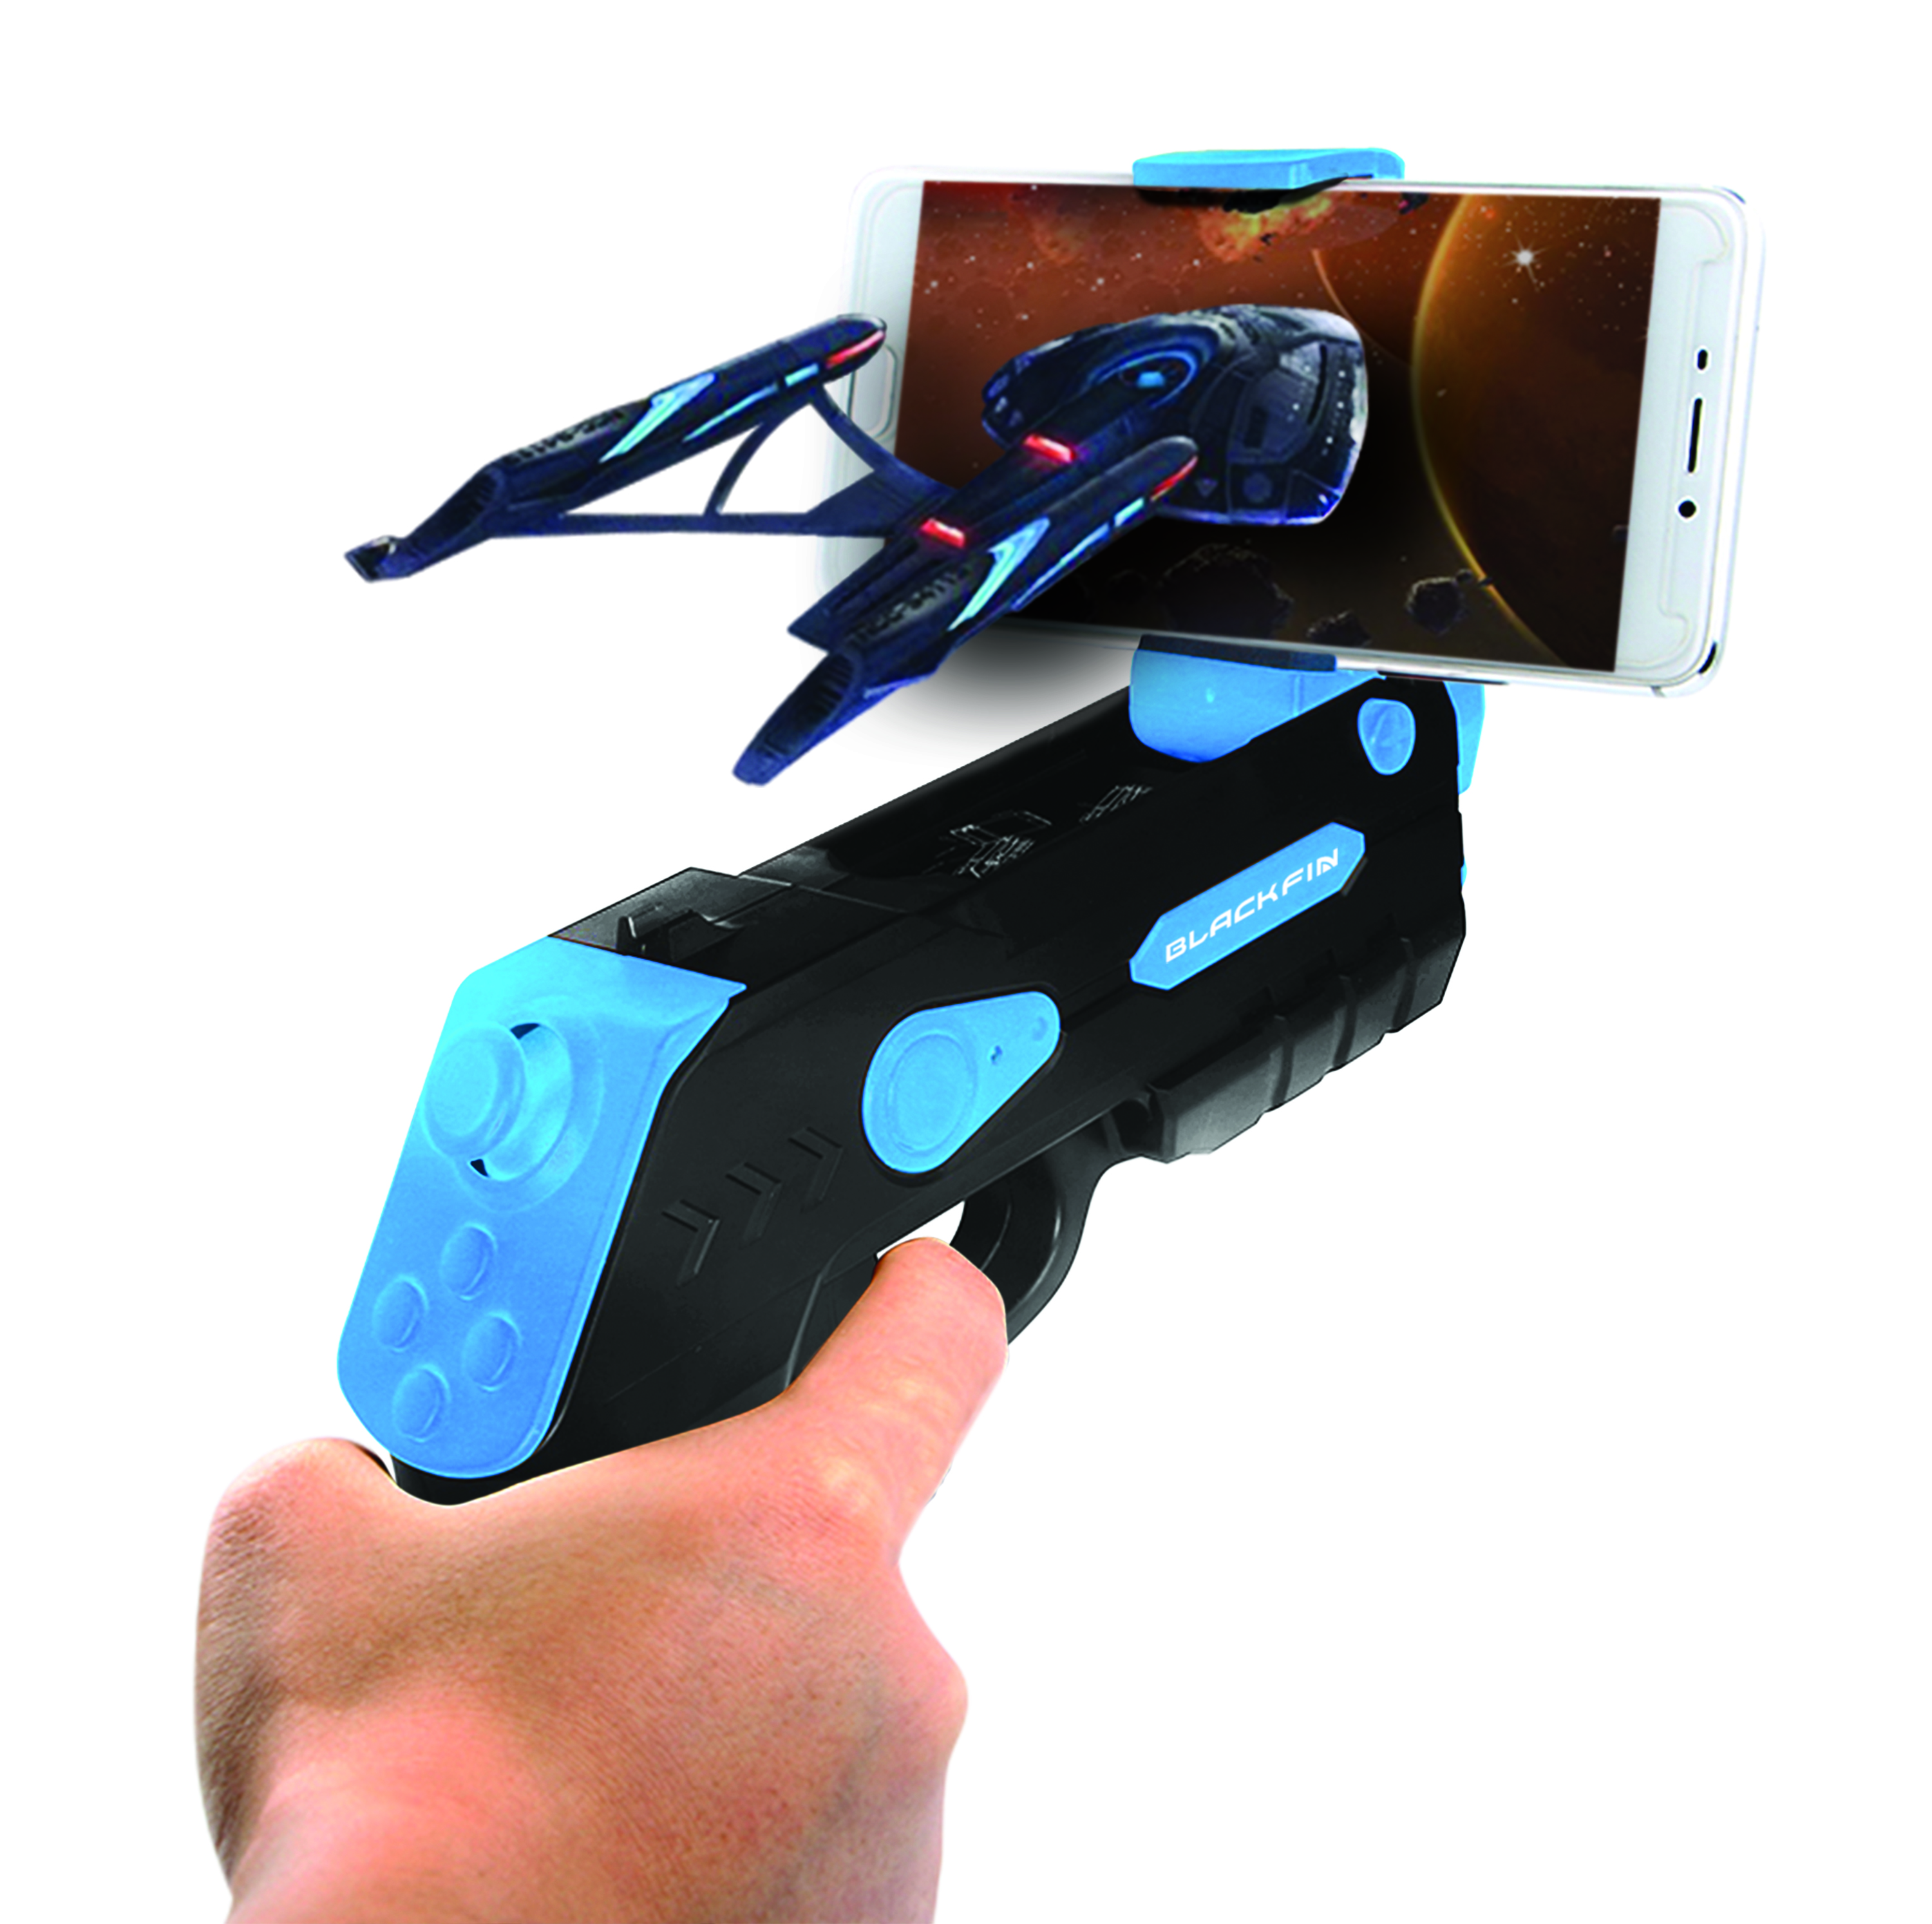 Black Fin AR BLASTER V.3 - Worlds AR — Augmented Reality Blaster Pro Edition